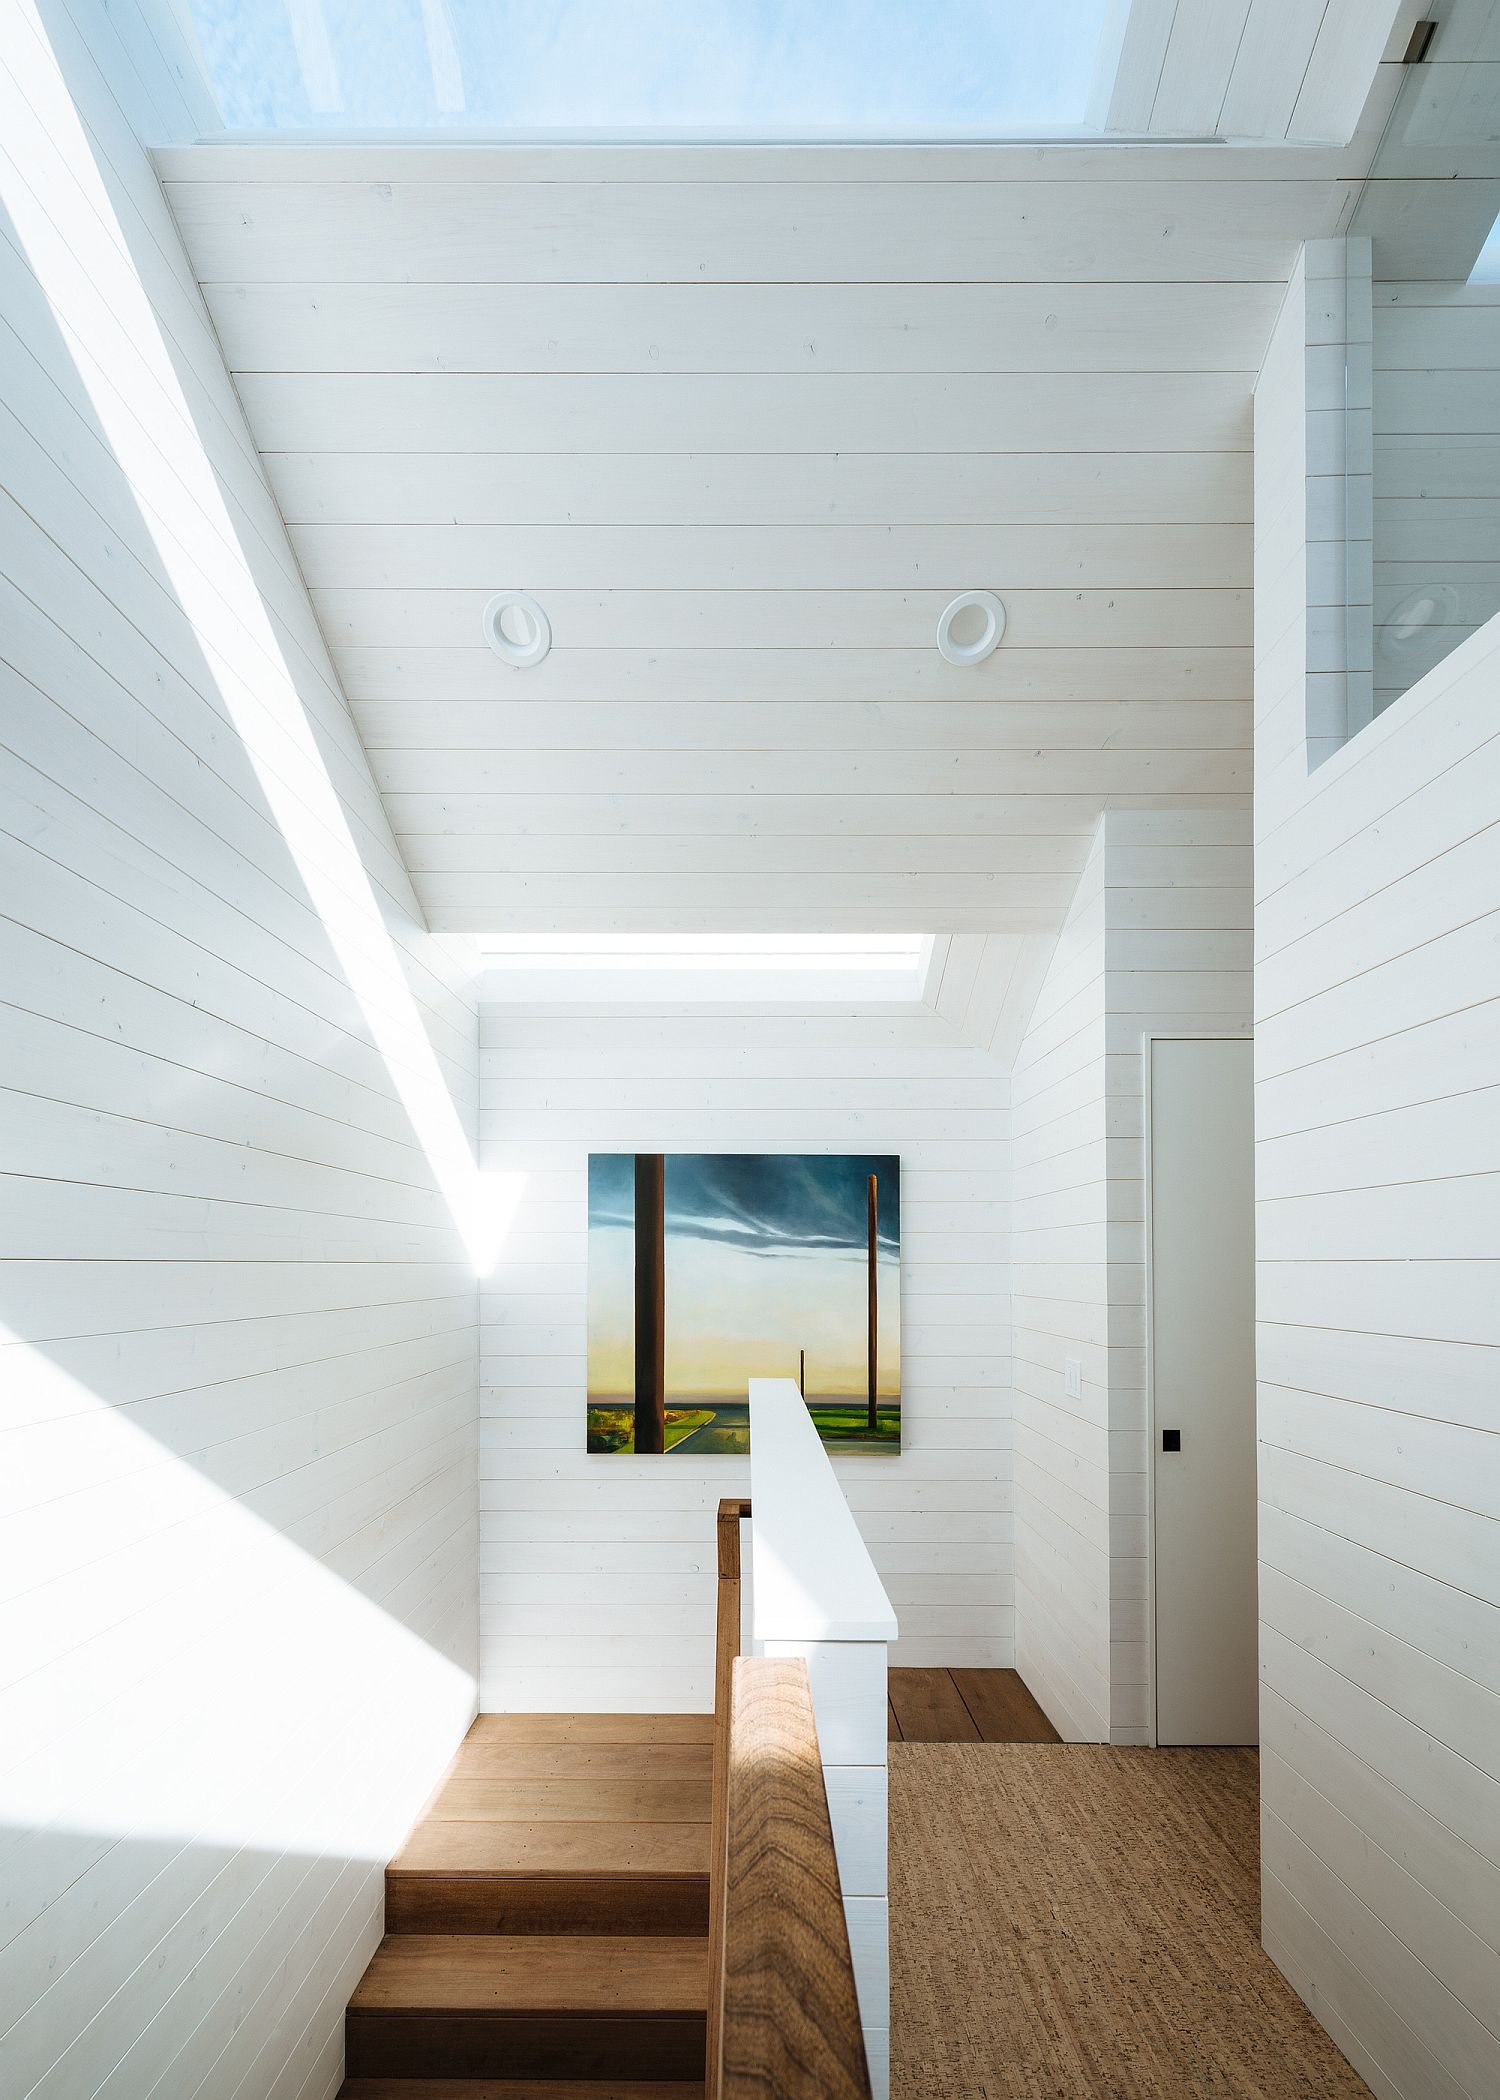 White and wood interior of the house with ample natural light